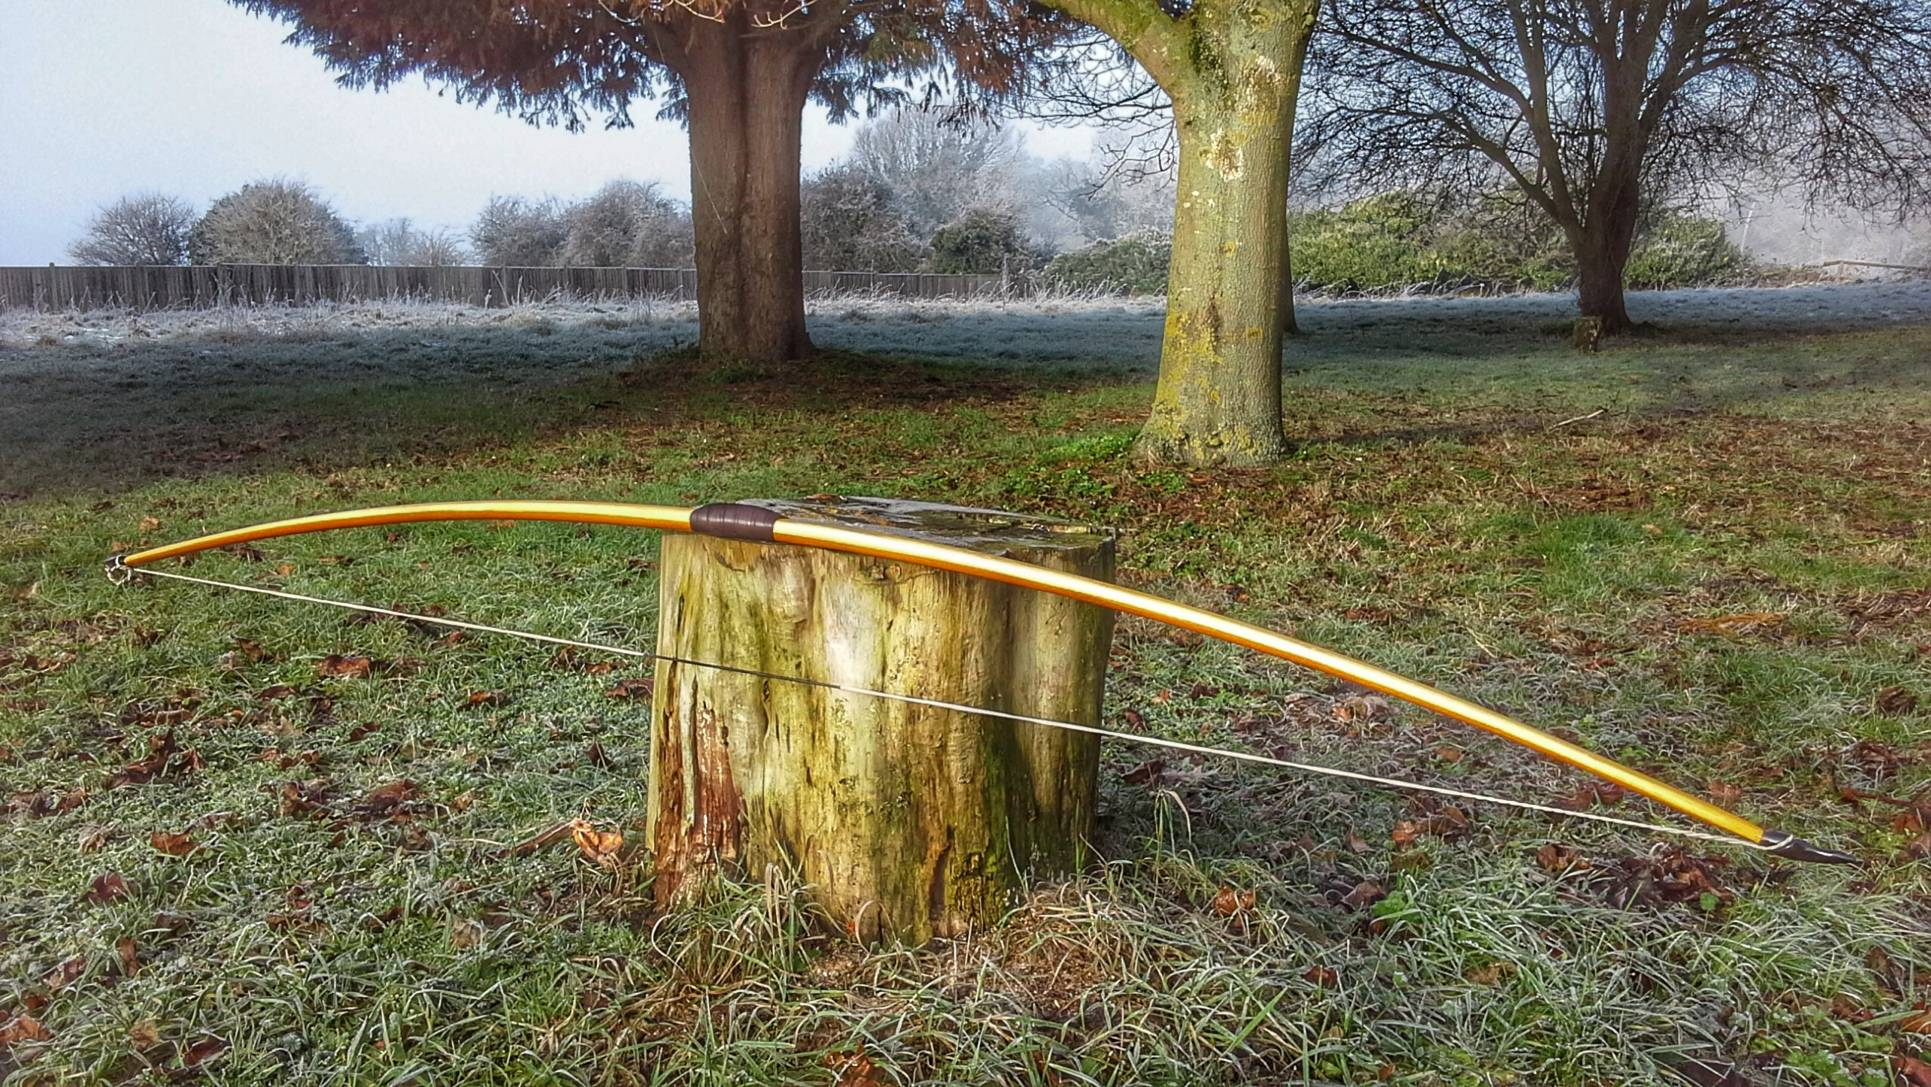 Entry level English longbow with horn nocks